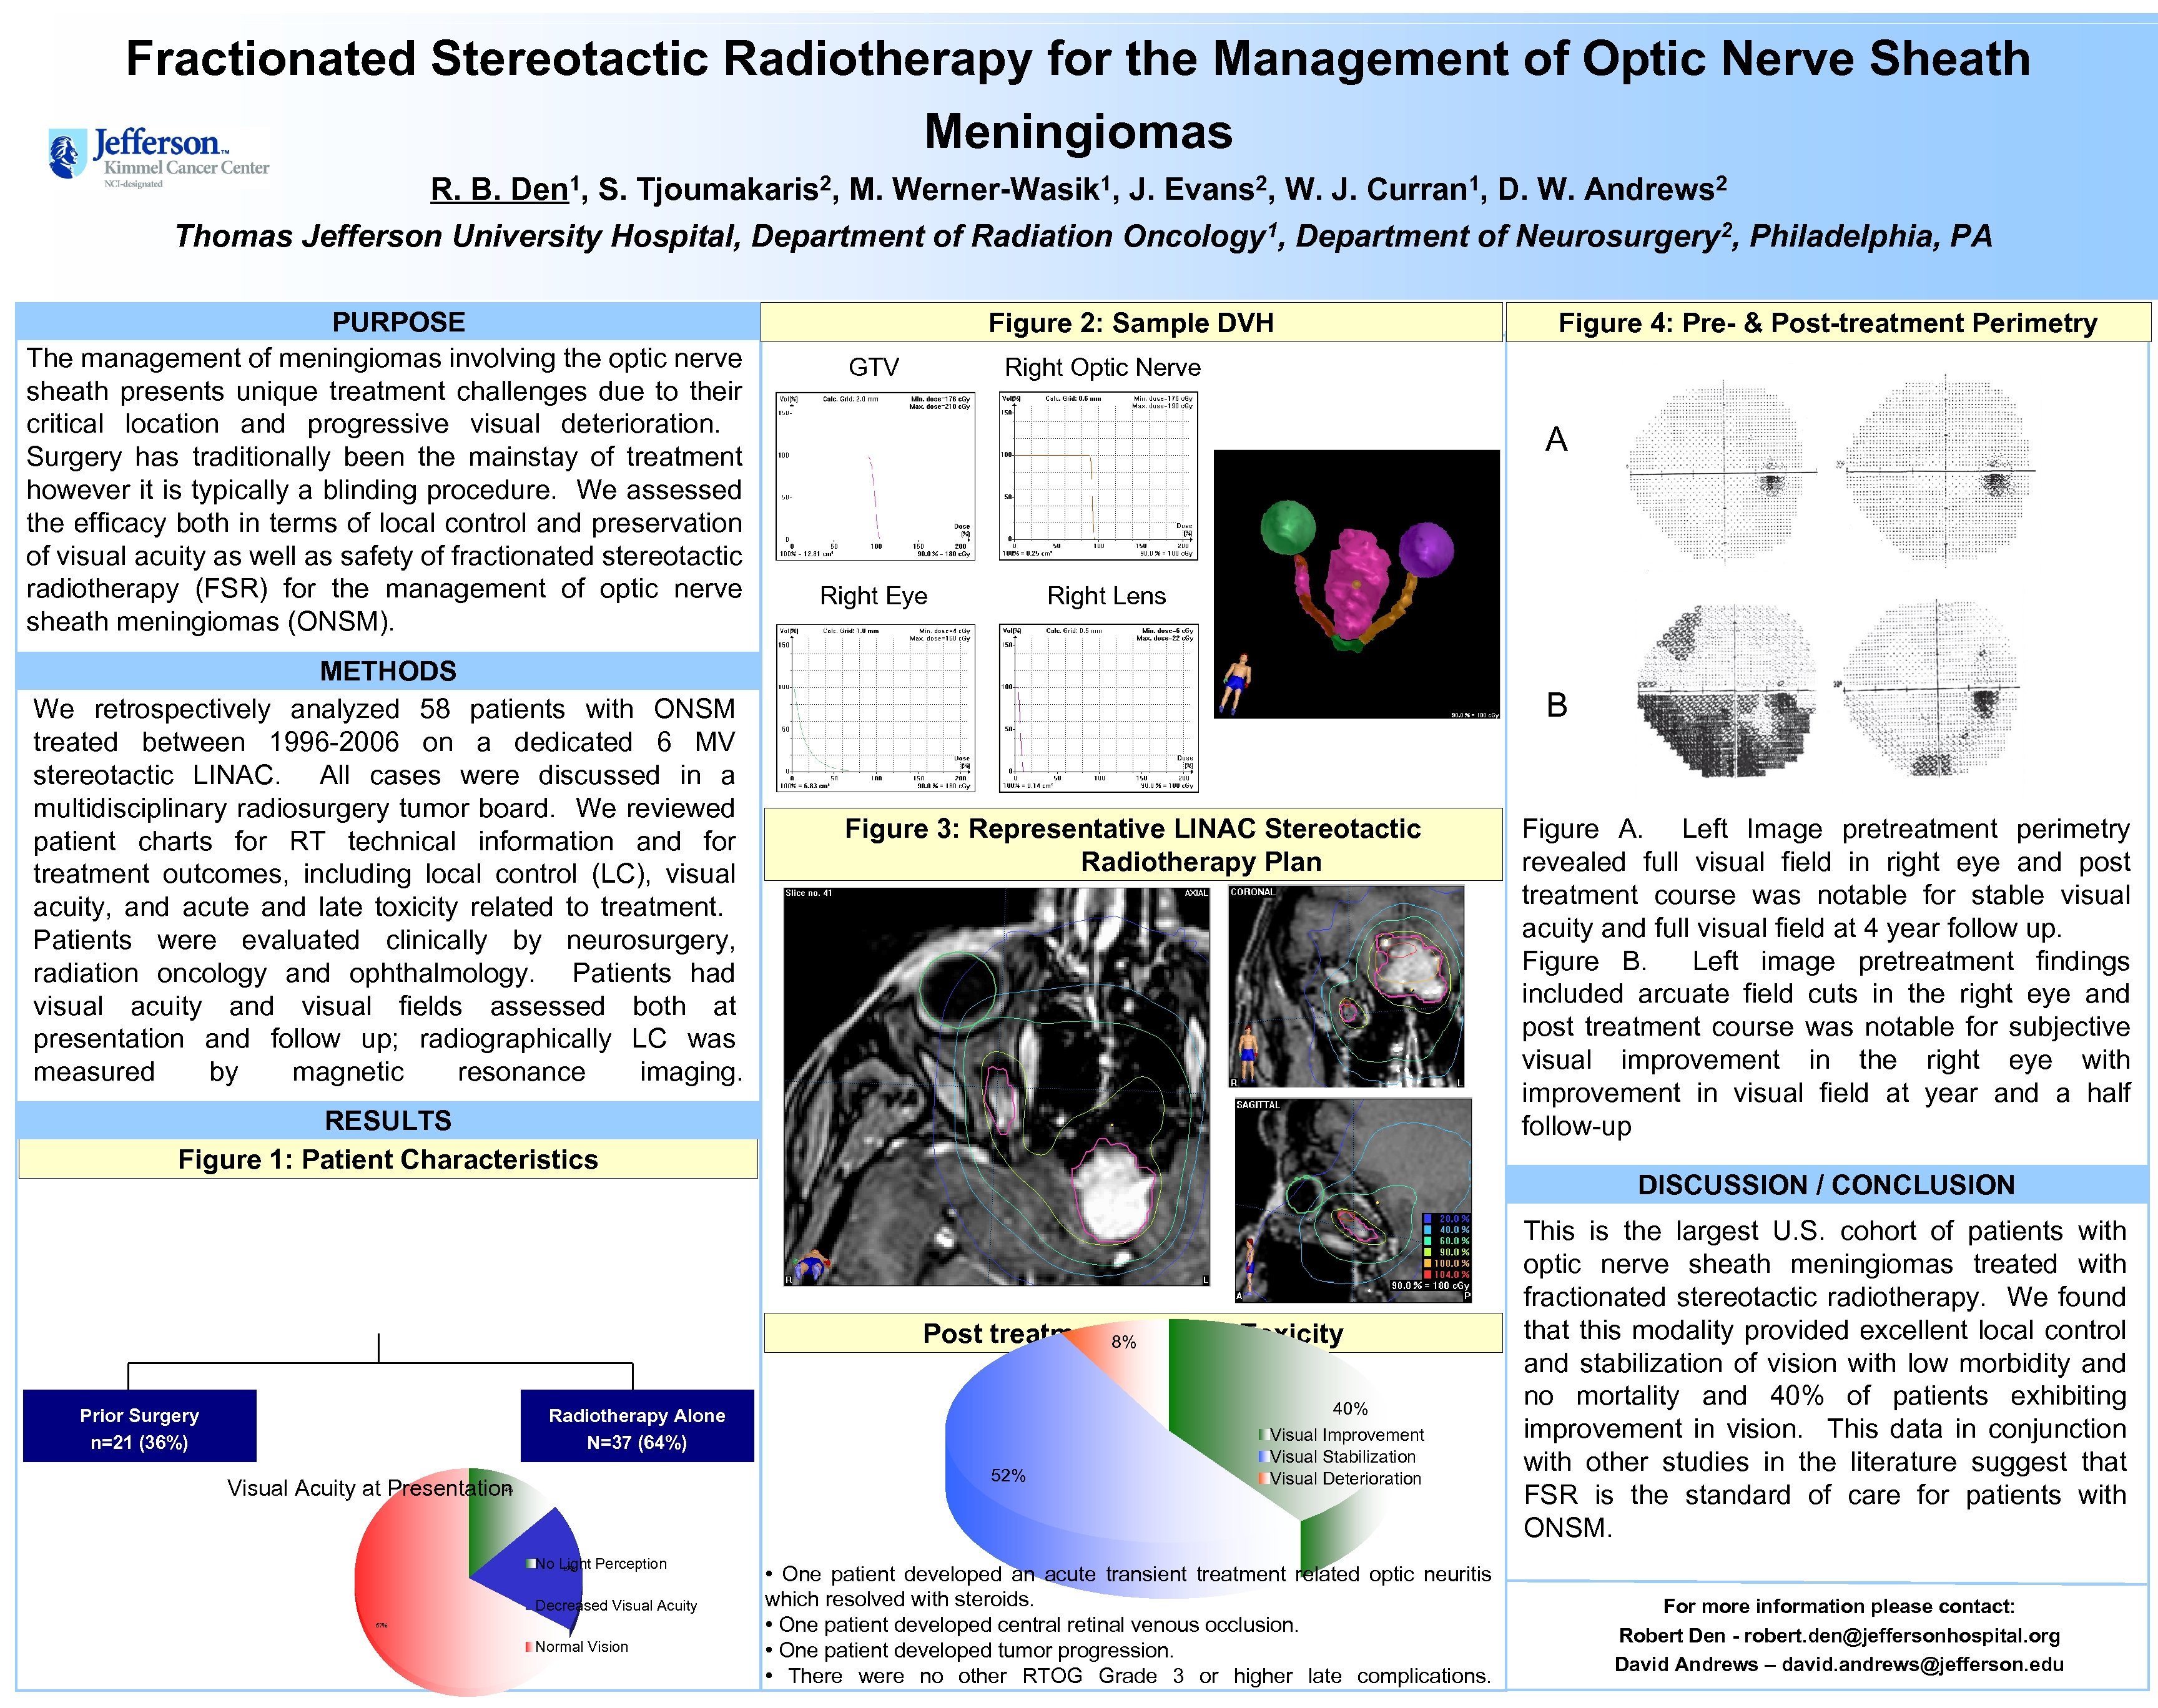 Fractionated Stereotactic Radiotherapy for the Management of Optic Nerve Sheath Meningiomas 1, Den 2,